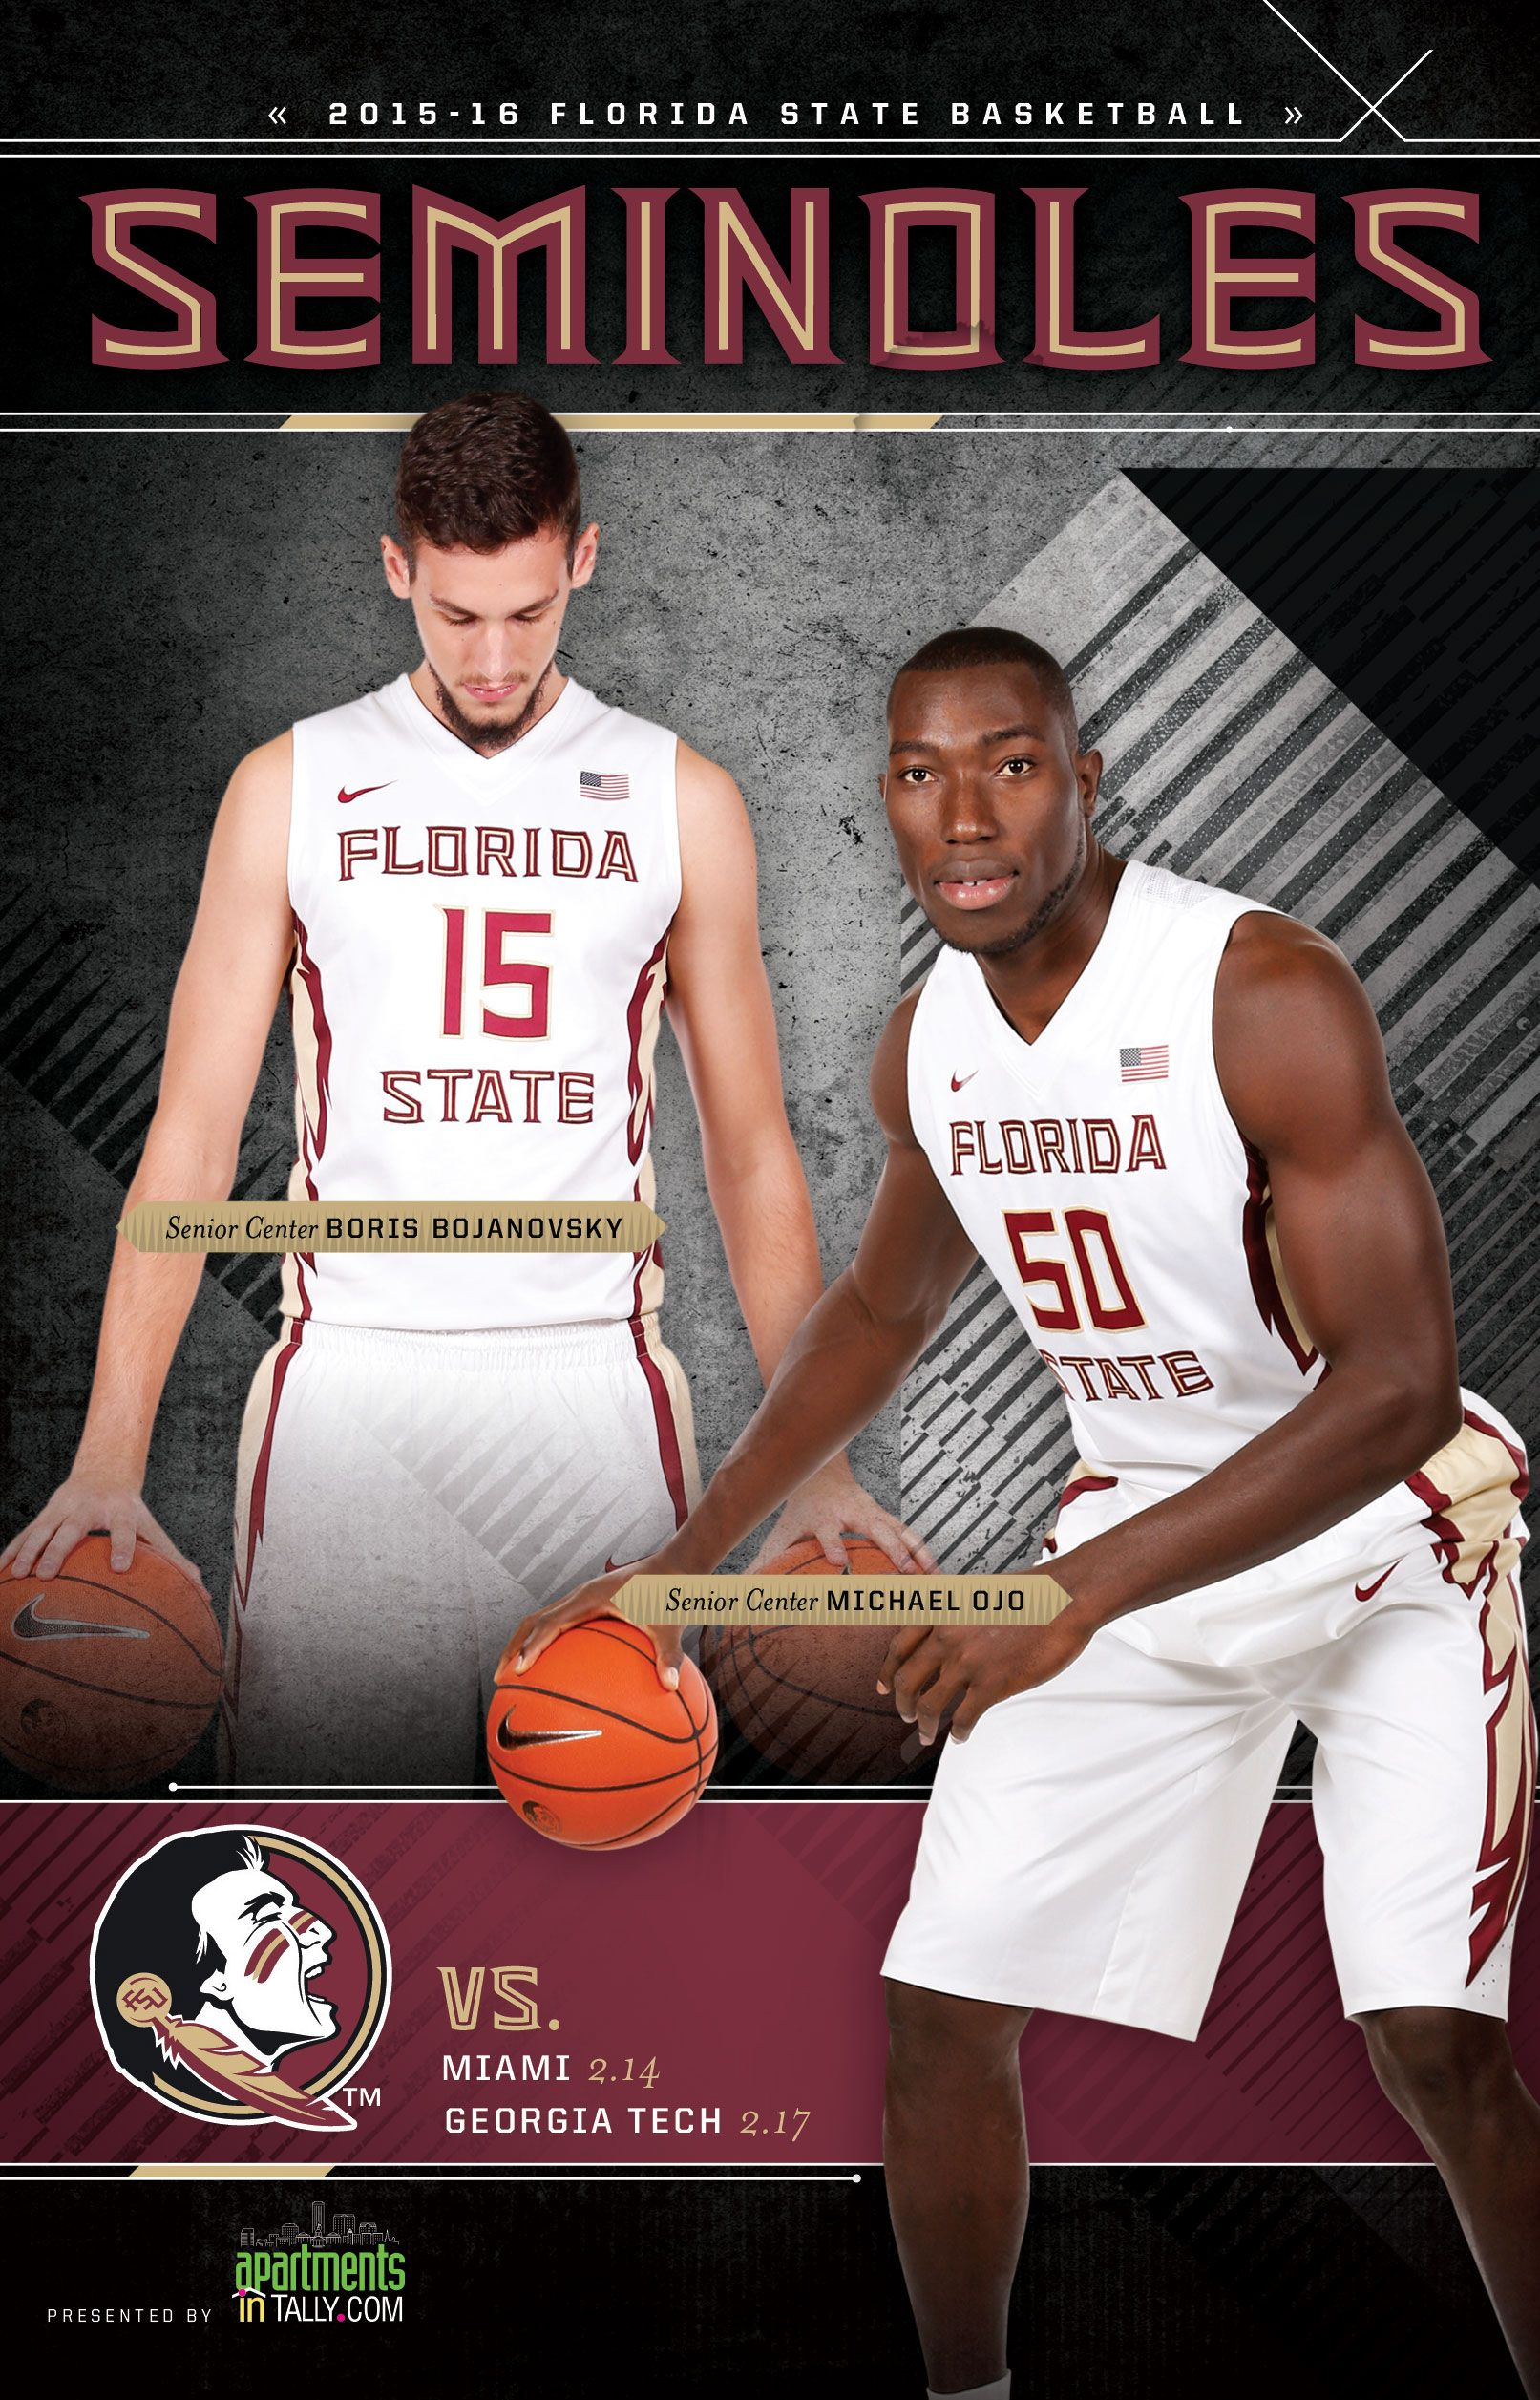 The 201516 Florida State Seminoles Men's Basketball